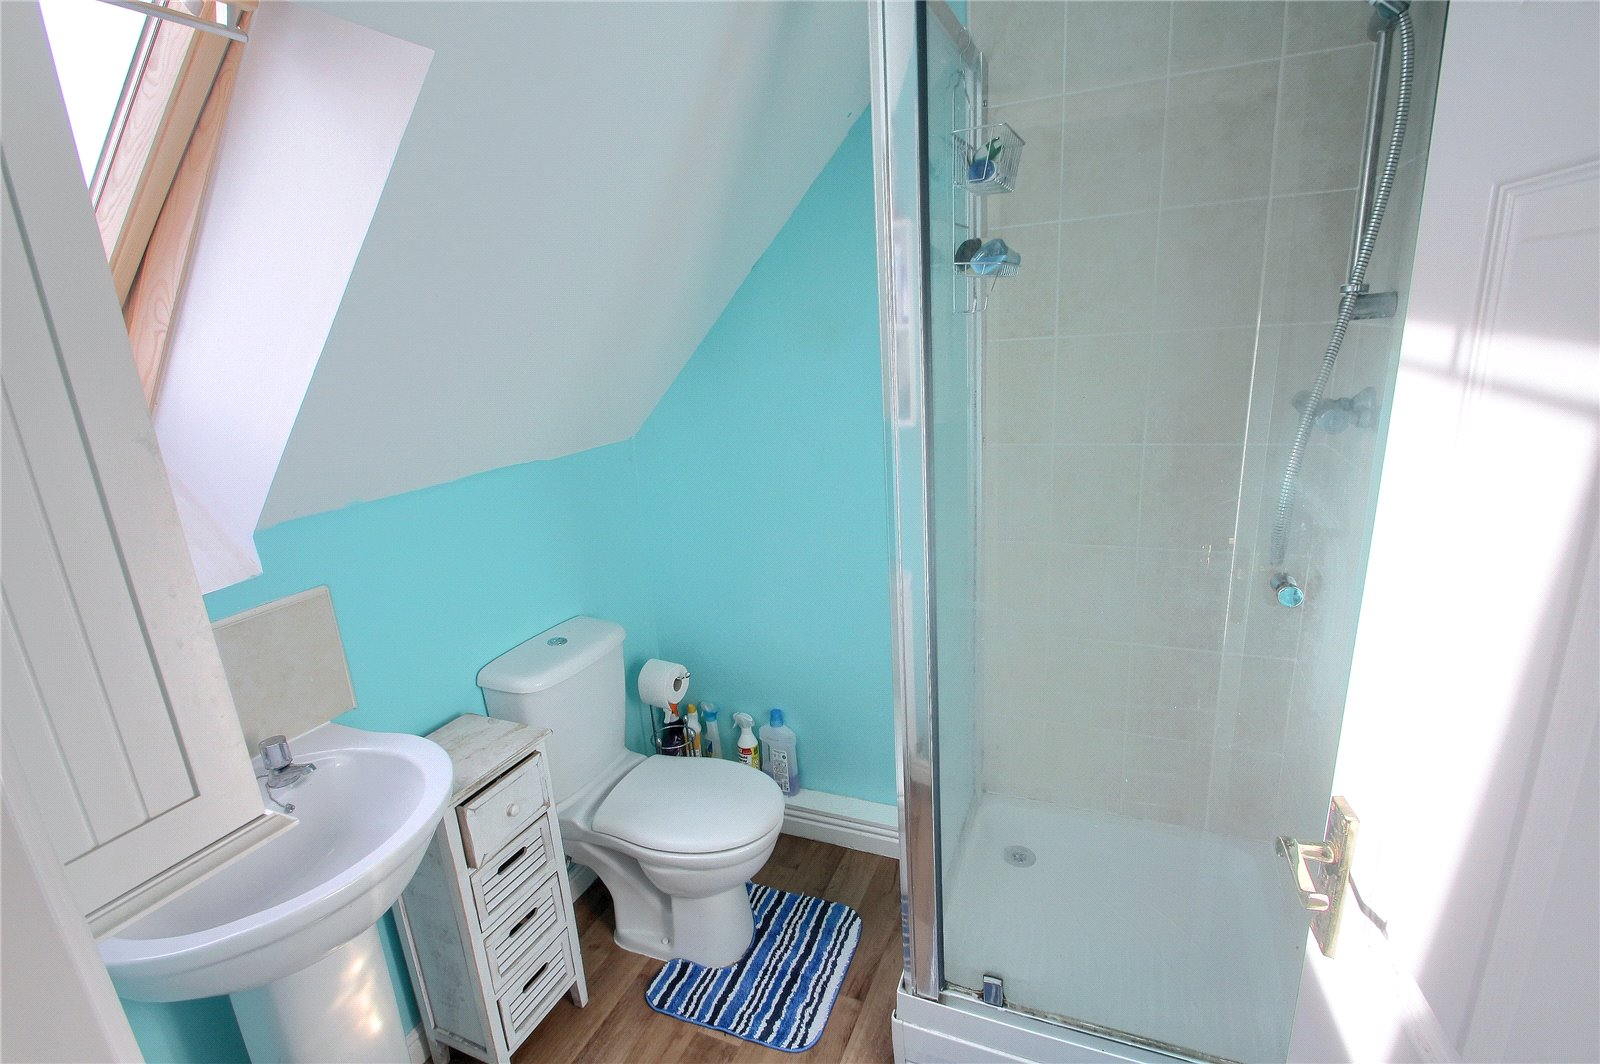 4 bed house for sale in Crimdon Beck Close, Whitewater Glade  - Property Image 6